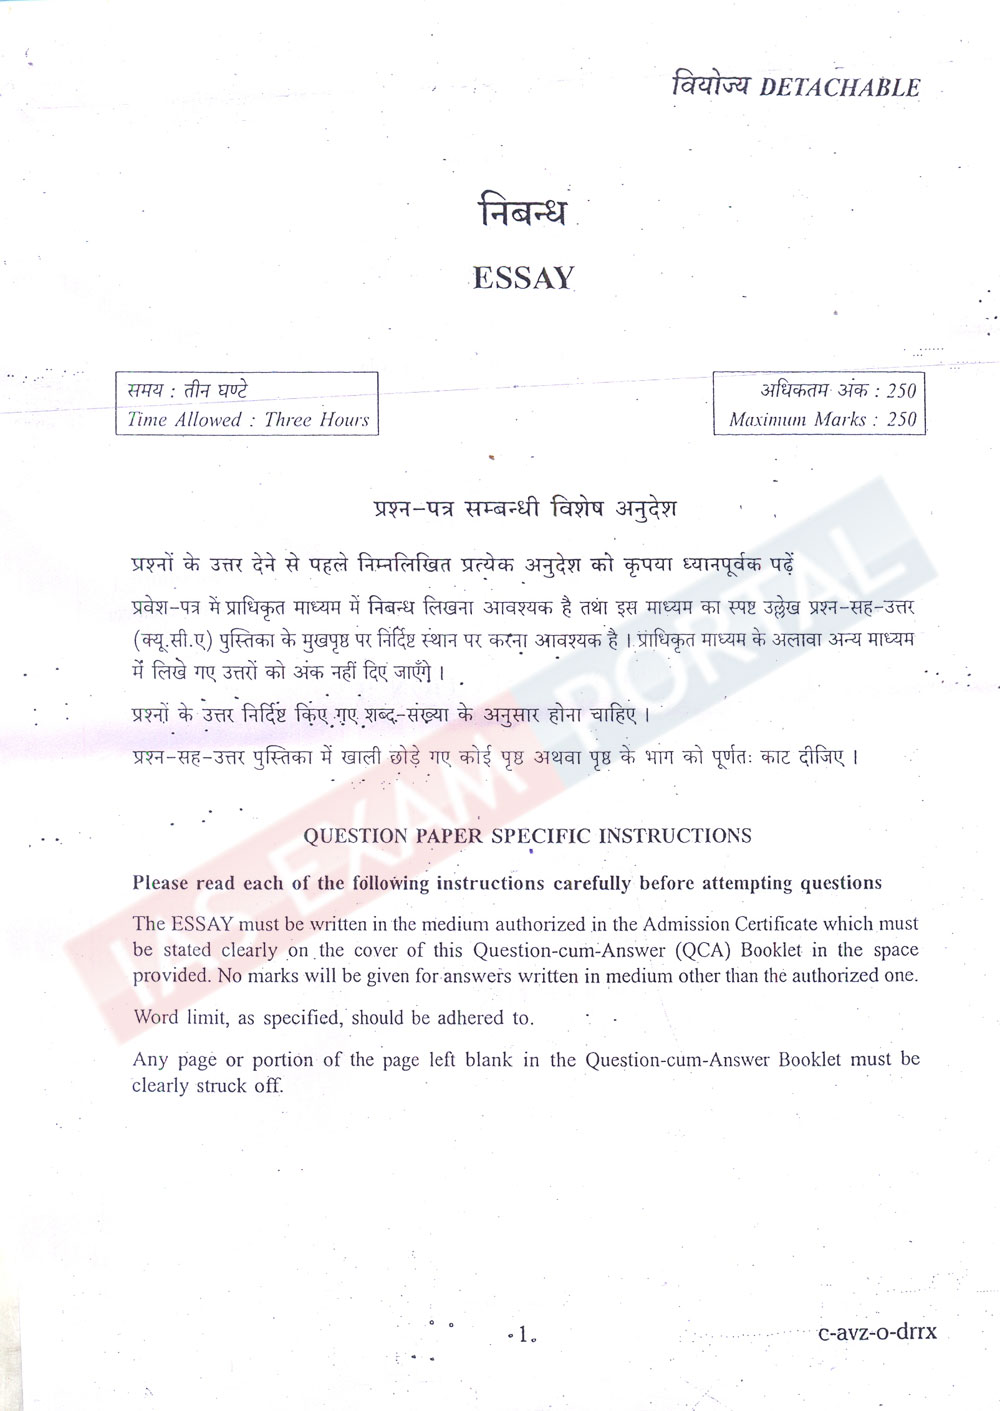 Essay On Food Crisis Download Upsc Ias Mains  Essay Compulsory Question Paper Teenage Pregnancy Persuasive Essay also Sample Autobiography Essays Essay Paper  Download Upsc Ias Mains  Essay Compulsory  Death Penalty Essay For